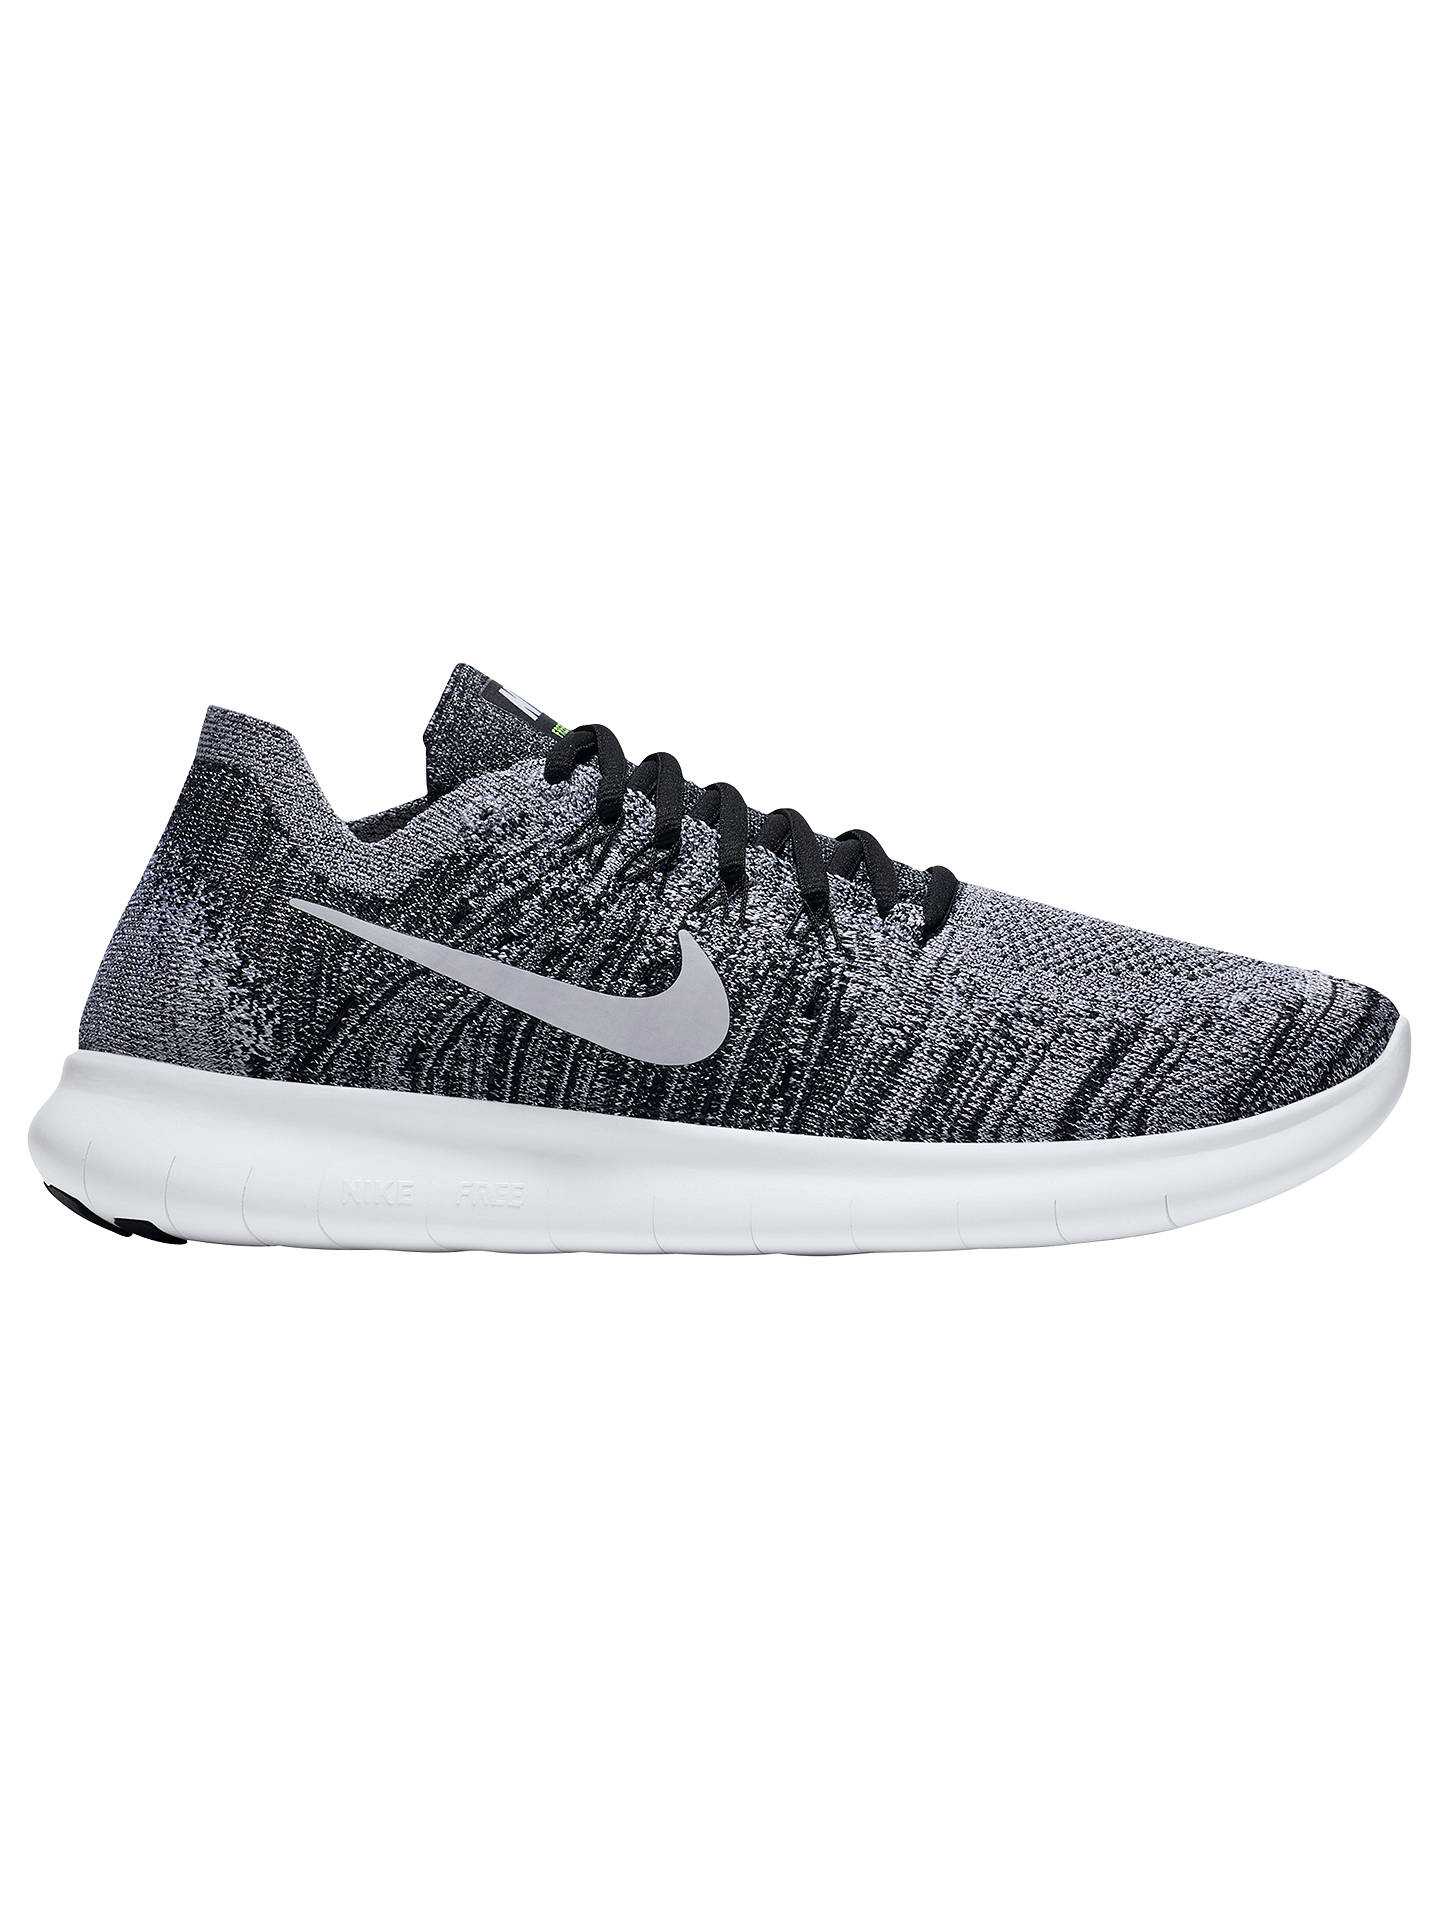 83361433d61 Nike Free RN Flyknit 2017 Men s Running at John Lewis   Partners